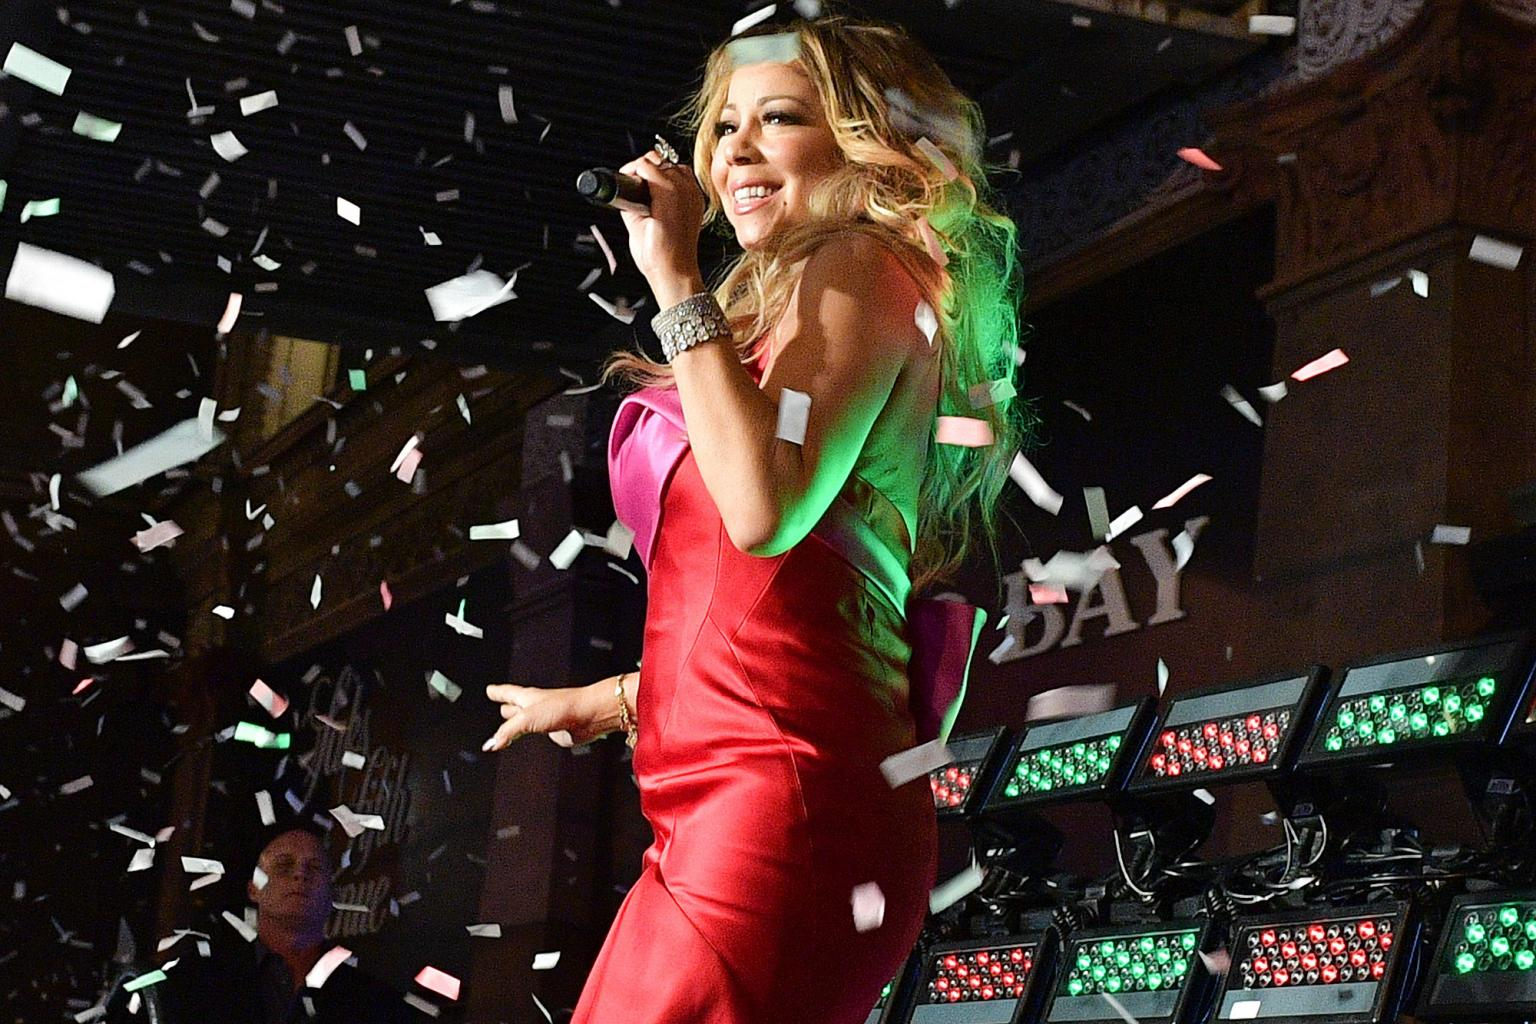 Watch: Mariah Carey Performs for the First Time Since Split from Fiancé James Packer